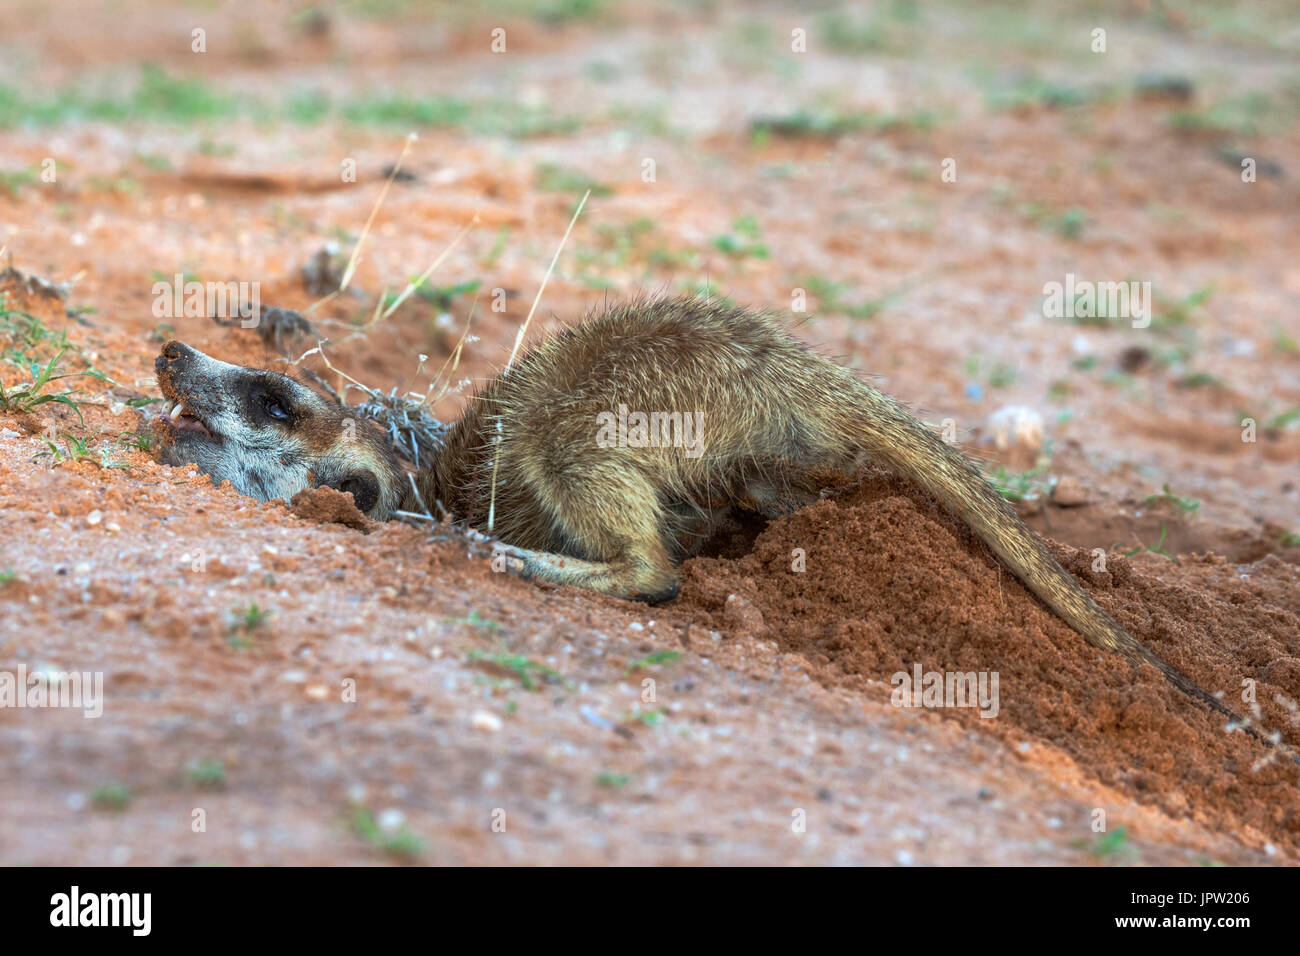 Meerkat (Suricata suricatta) digging, Kgalagadi Transfrontier Park, Northern Cape, South Africa, January 2017 - Stock Image